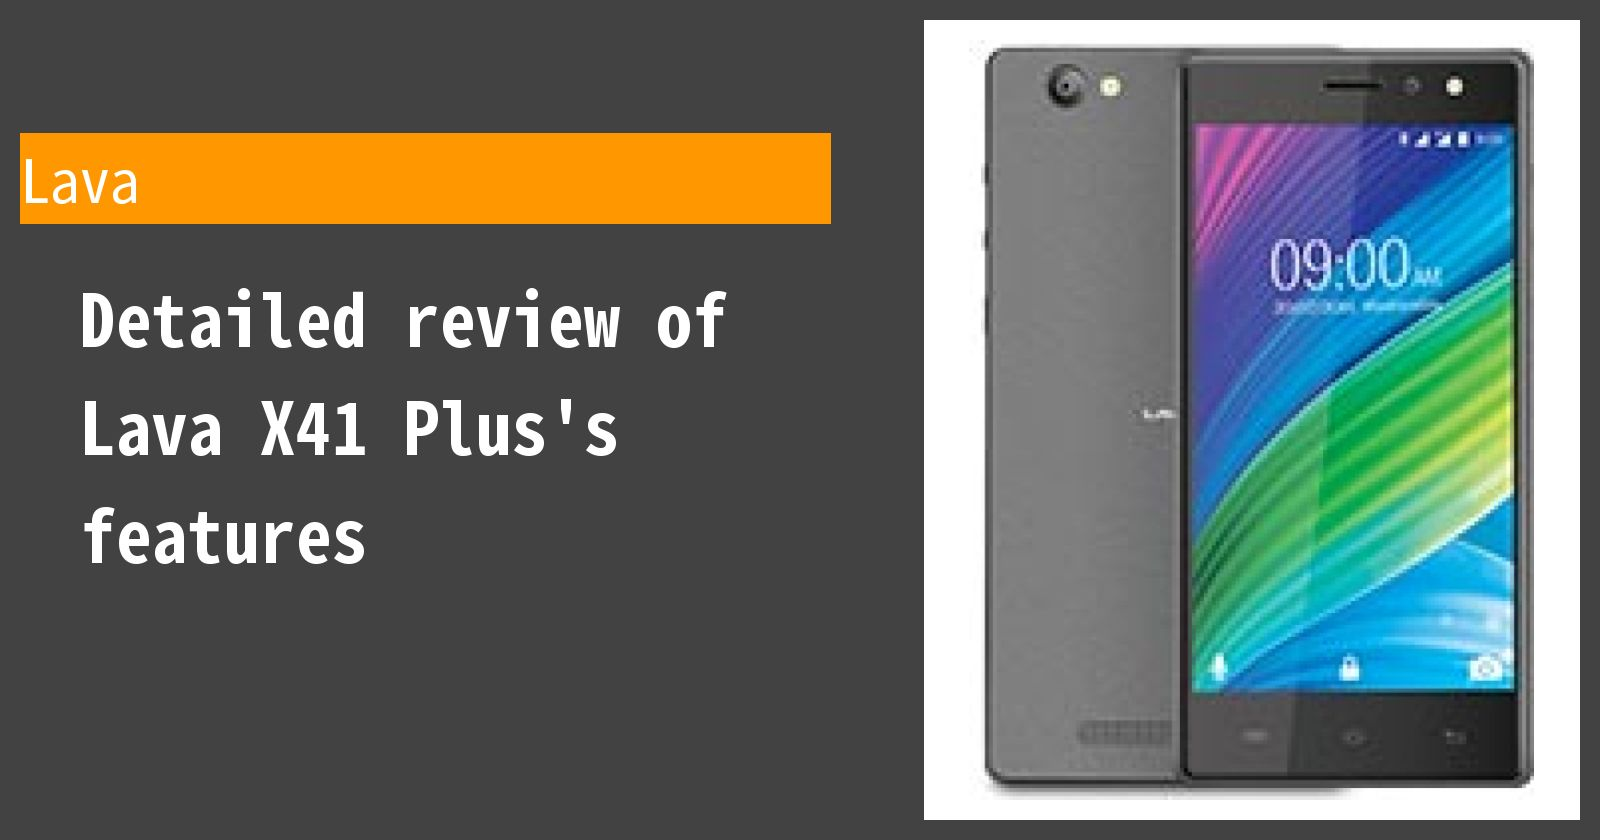 Detailed review of Lava X41 Plus's features